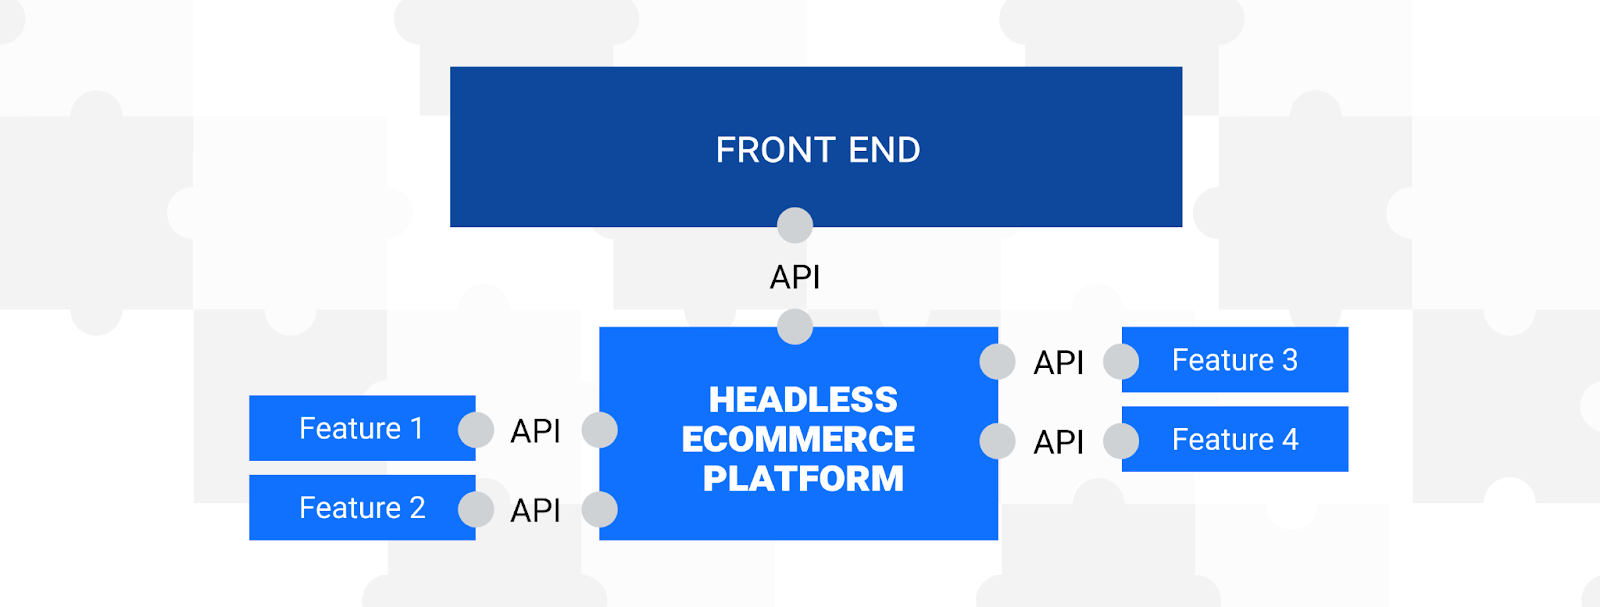 Complex structure of headless ecommerce system connected to features and front end through API